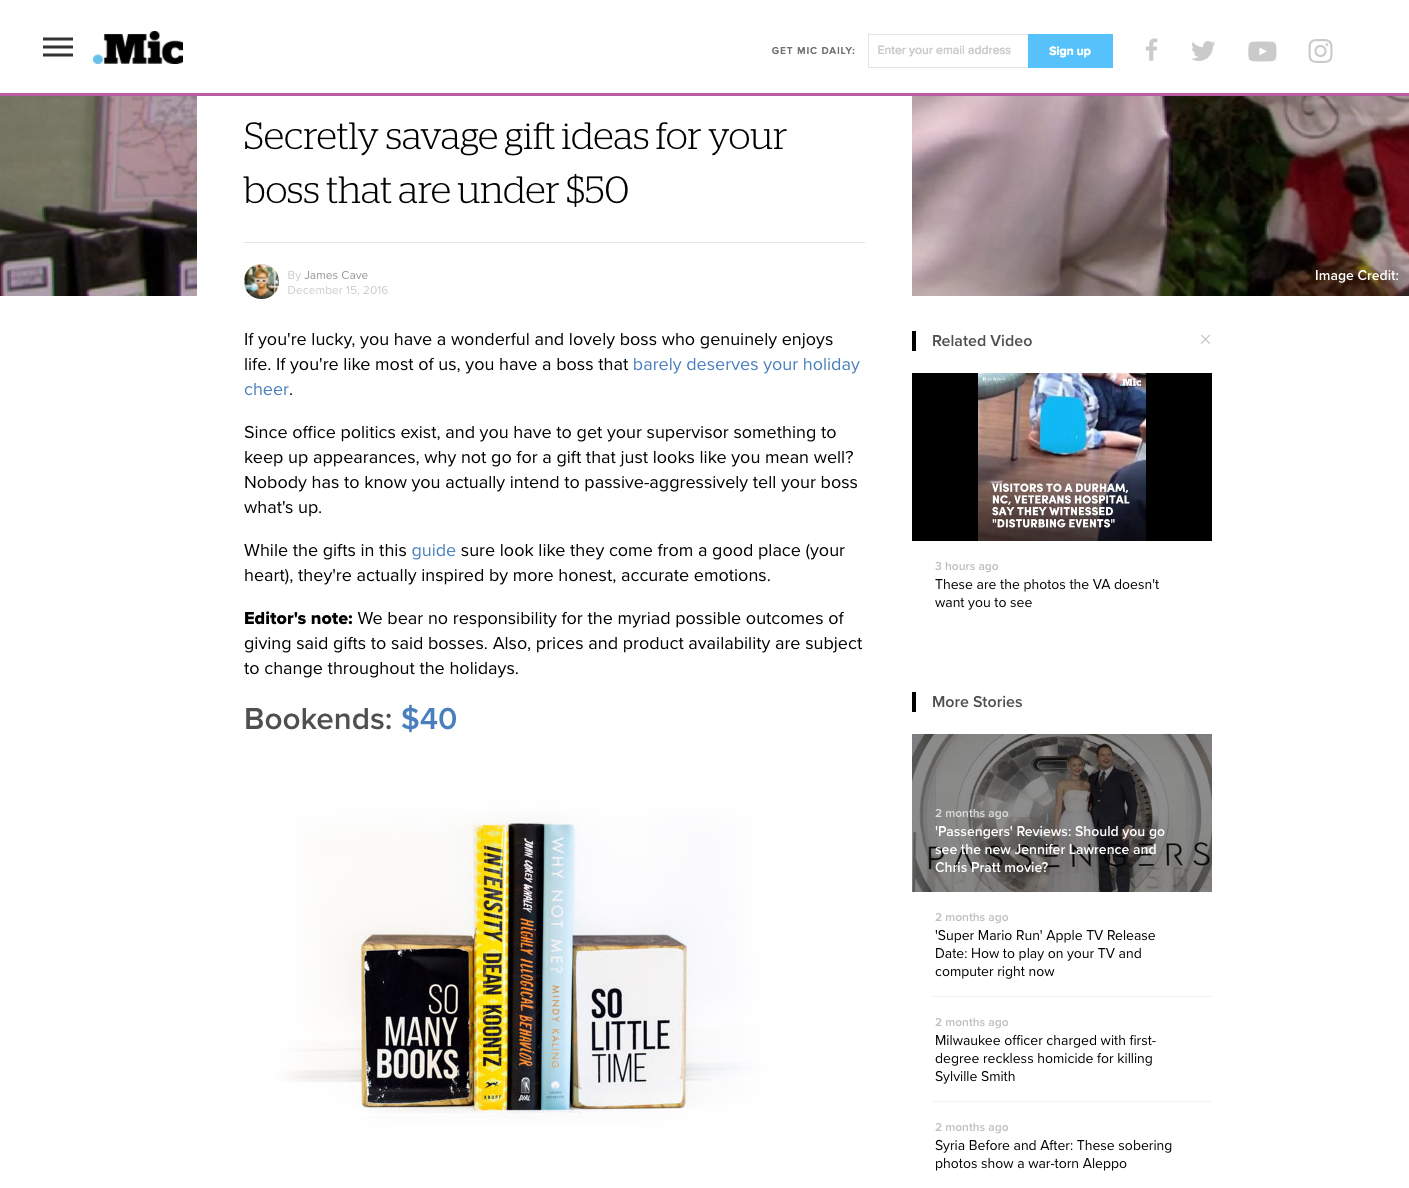 screencapture-mic-articles-162353-secretly-savage-gift-ideas-for-your-boss-that-are-under-50-1488397144536 copy.jpg